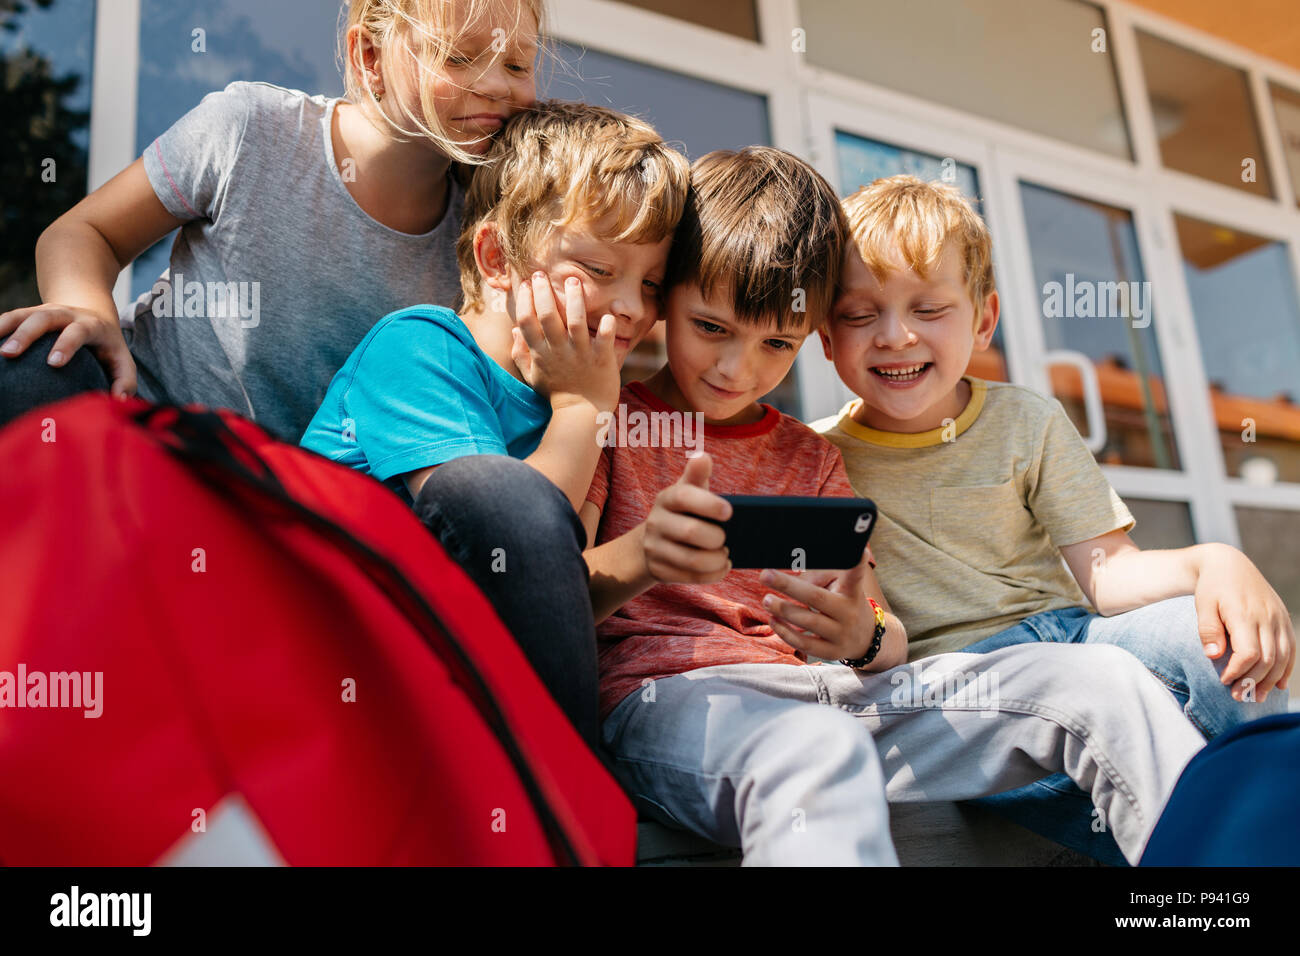 Young students playing with a mobile phone. Children having fun taking a selfie outside of school. Stock Photo